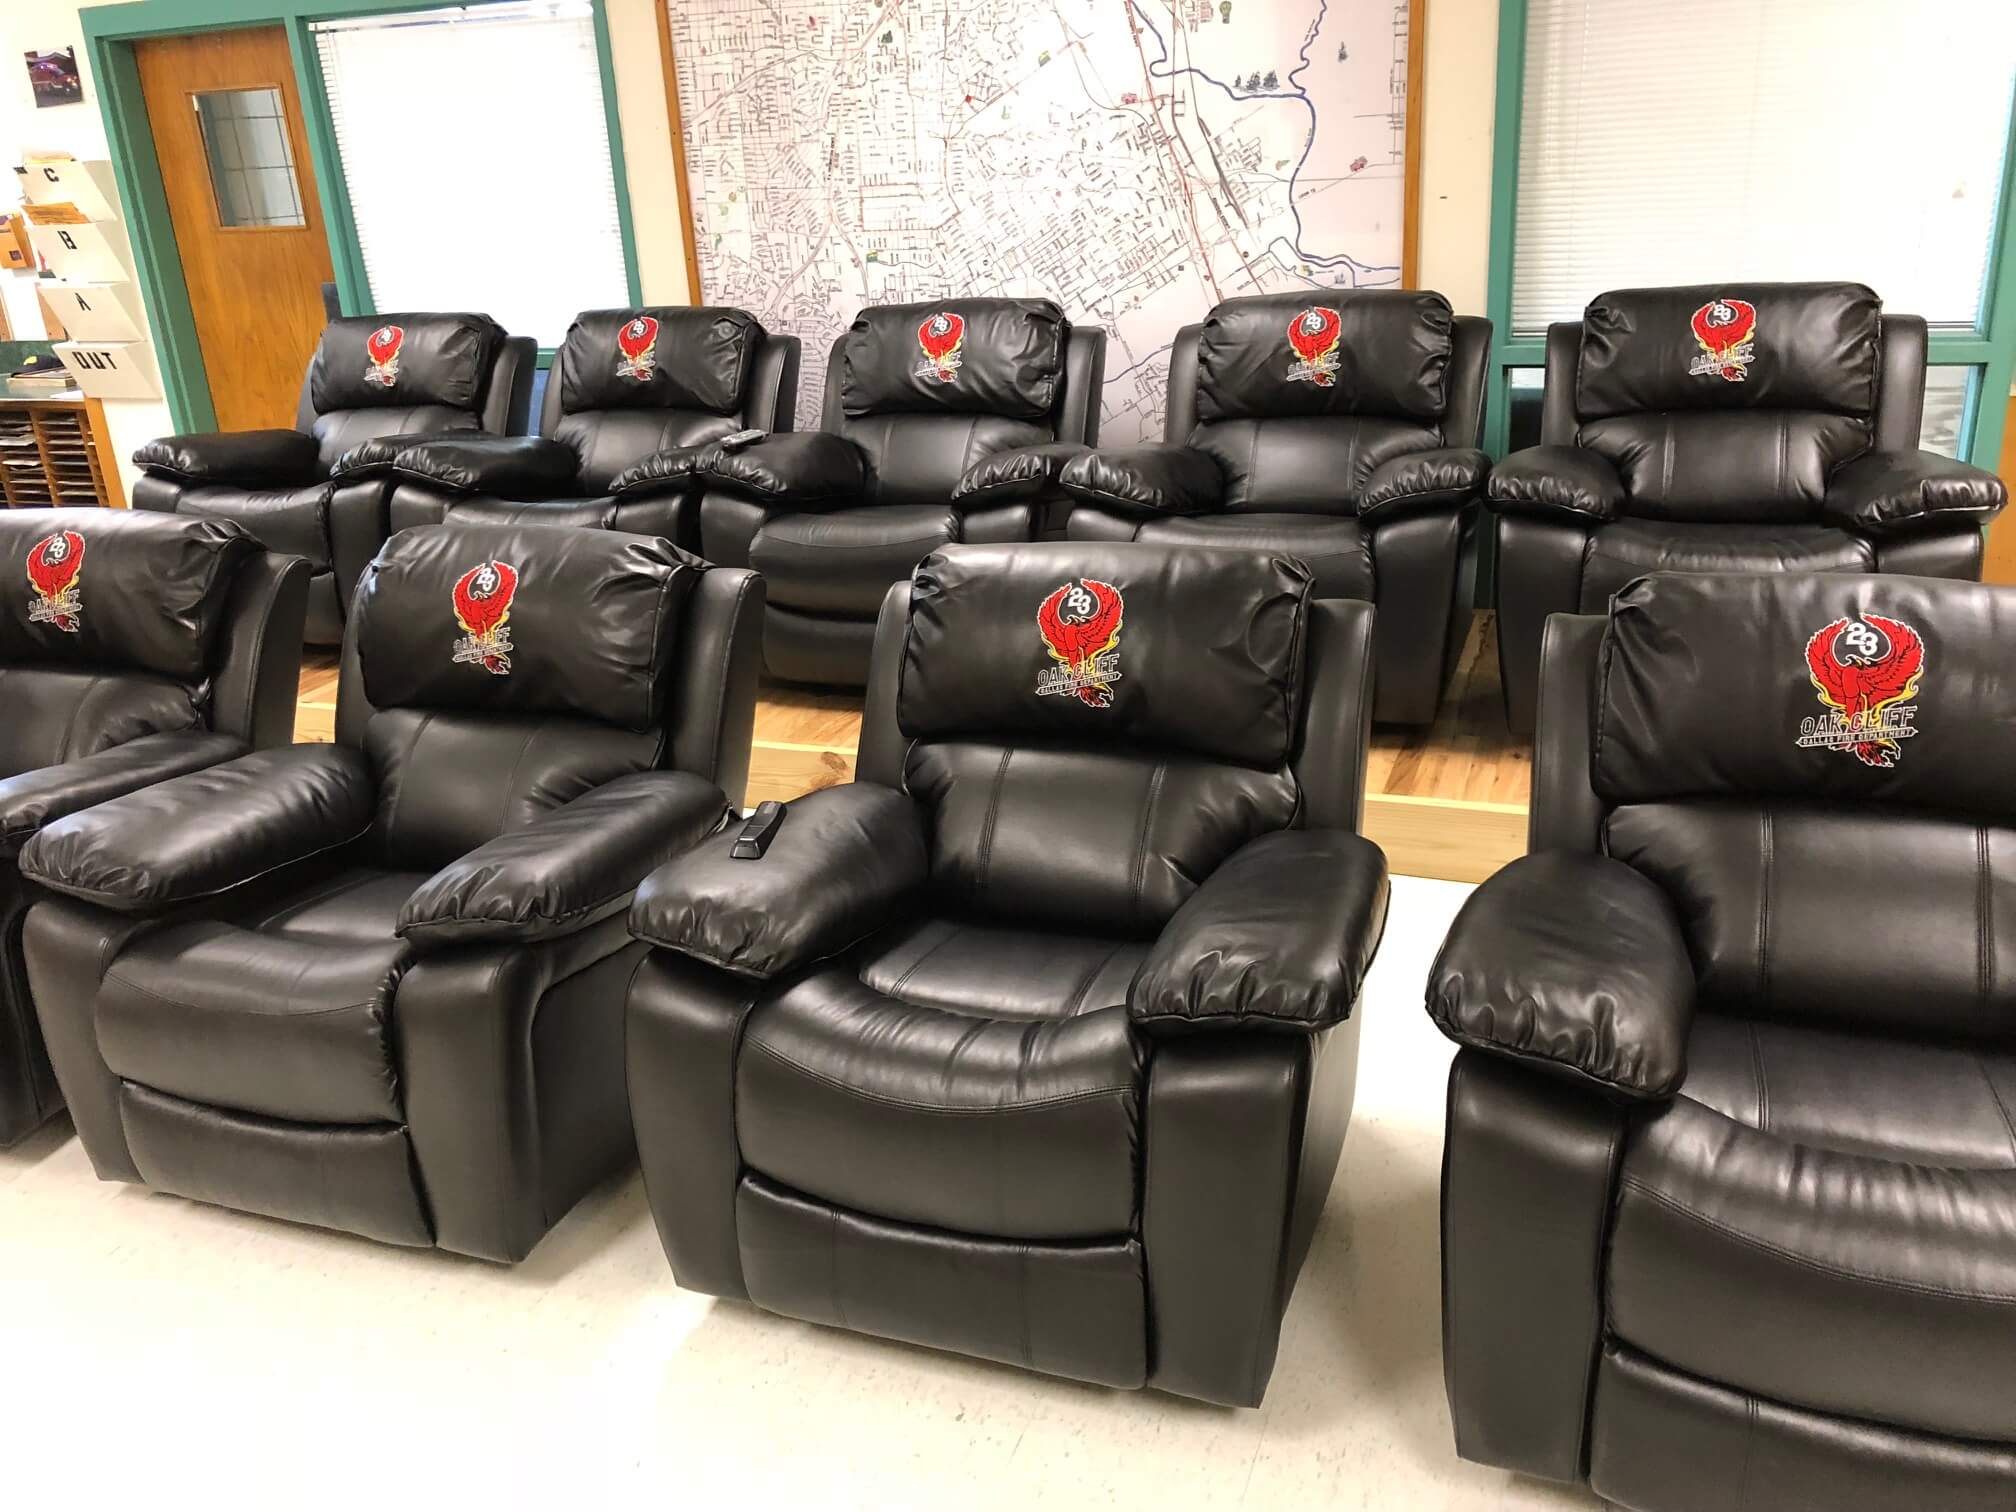 Custom embroidered recliners & chairs for Dallas Fire Station 23